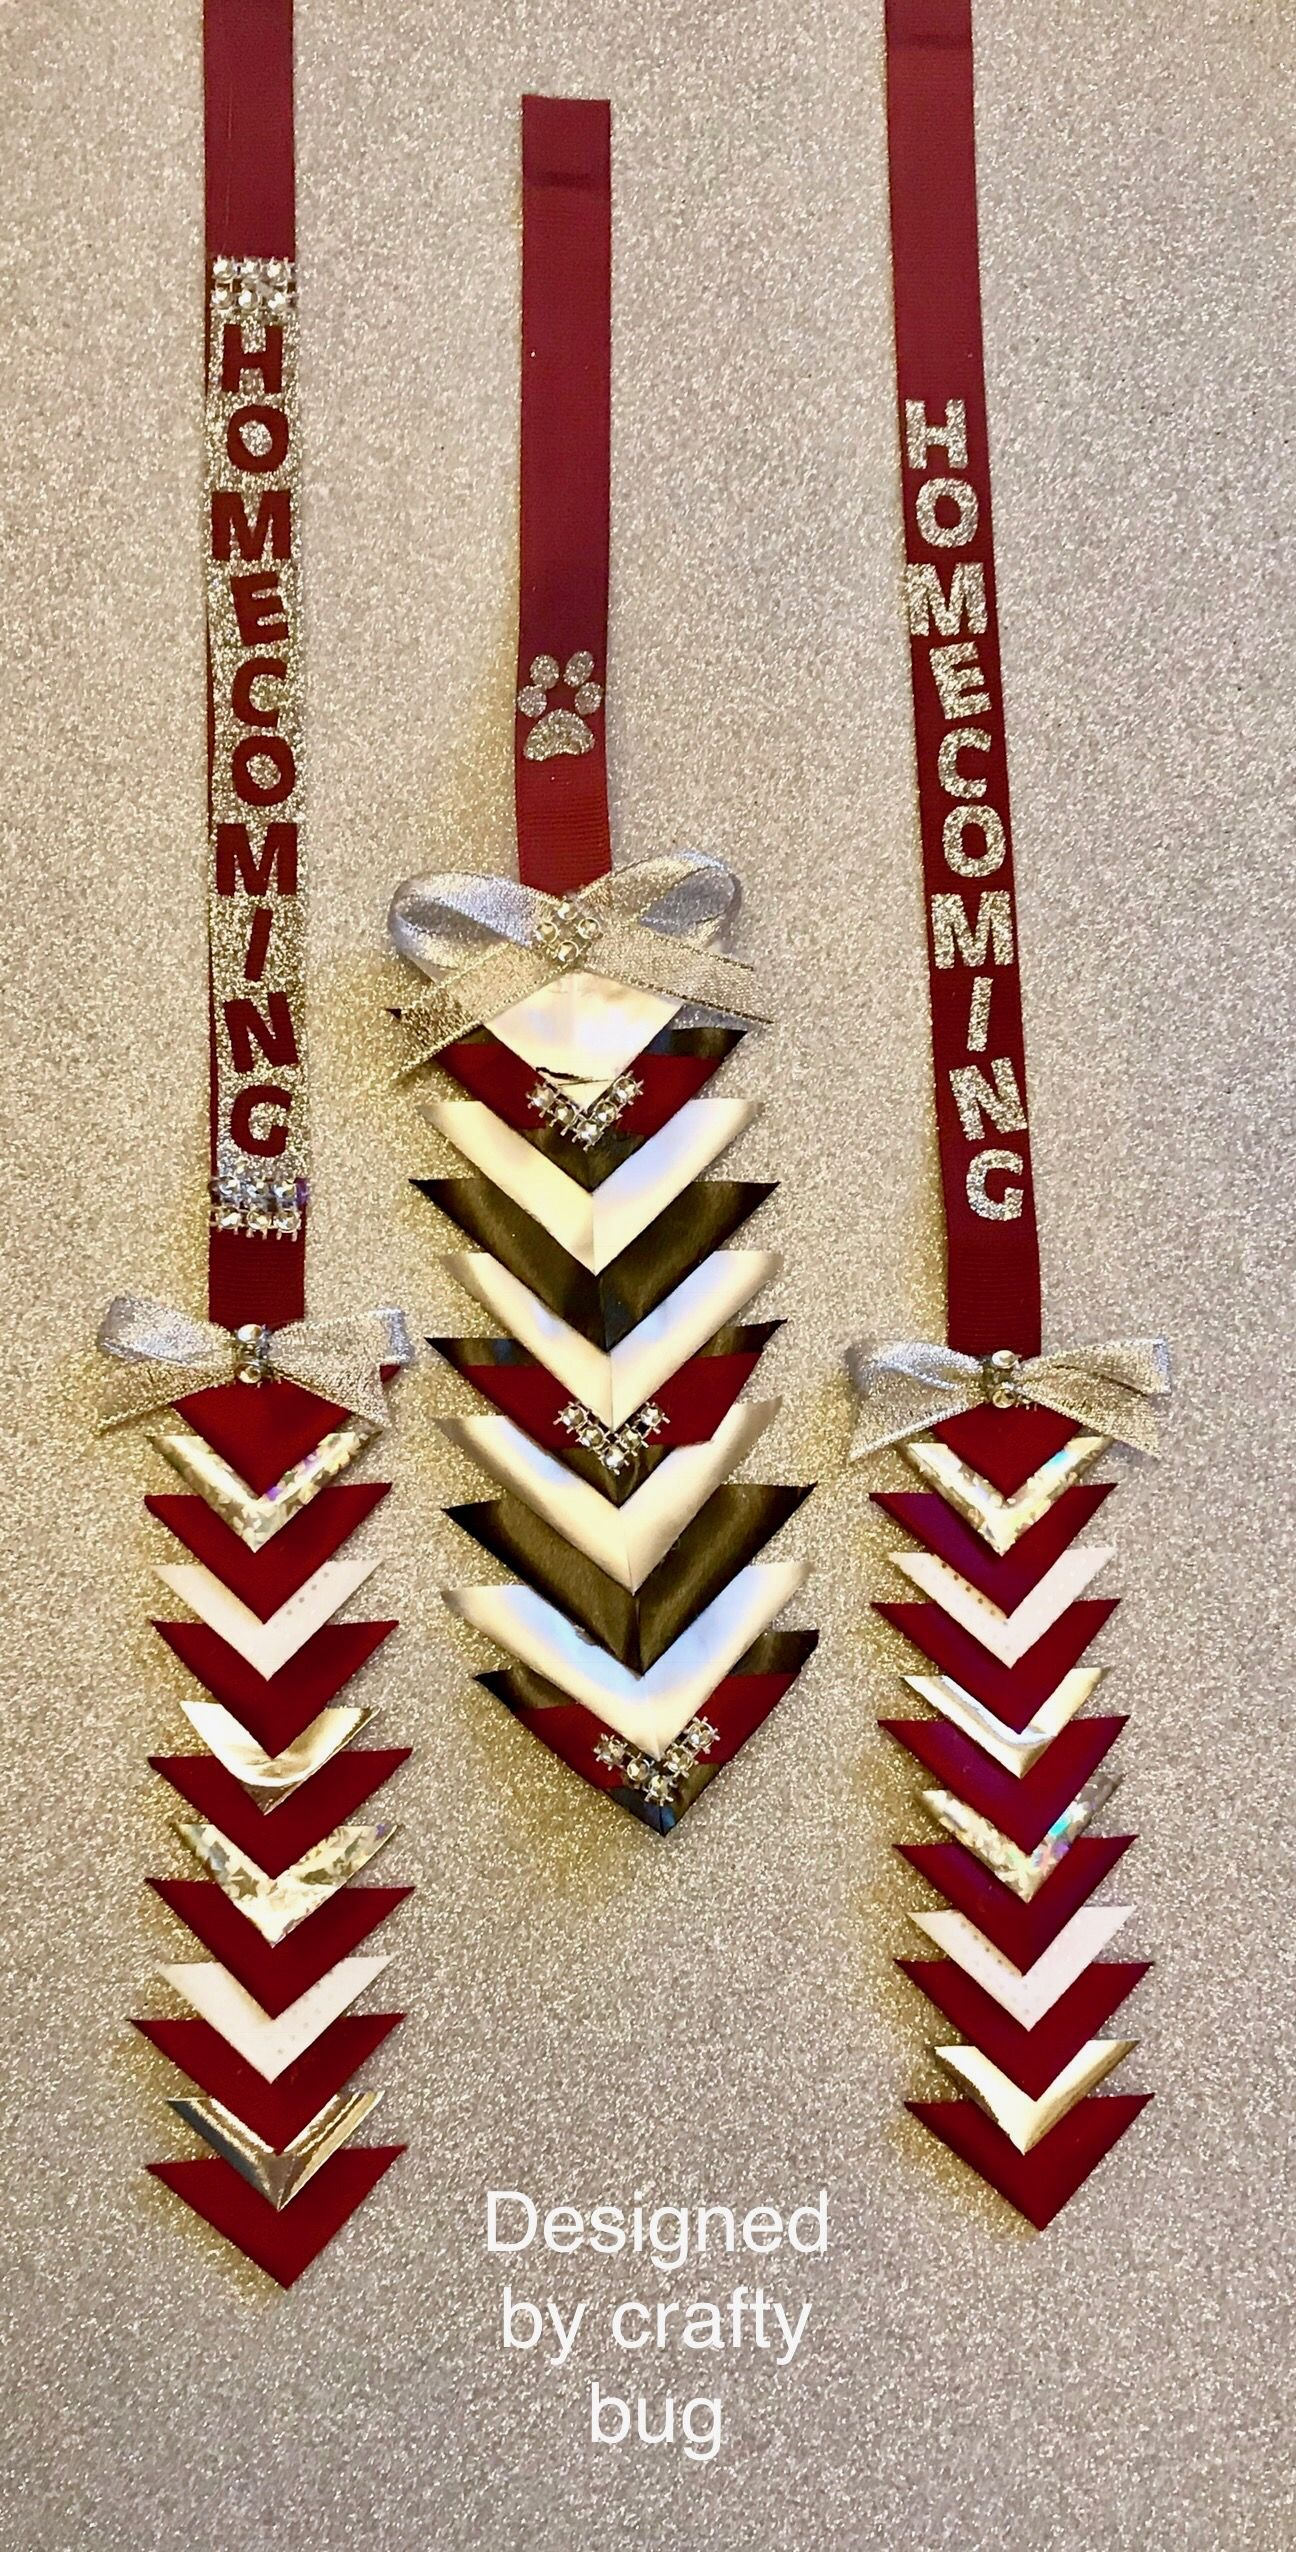 Maroon/ burgundy, white, black and silver triangular chains for homecoming mums.